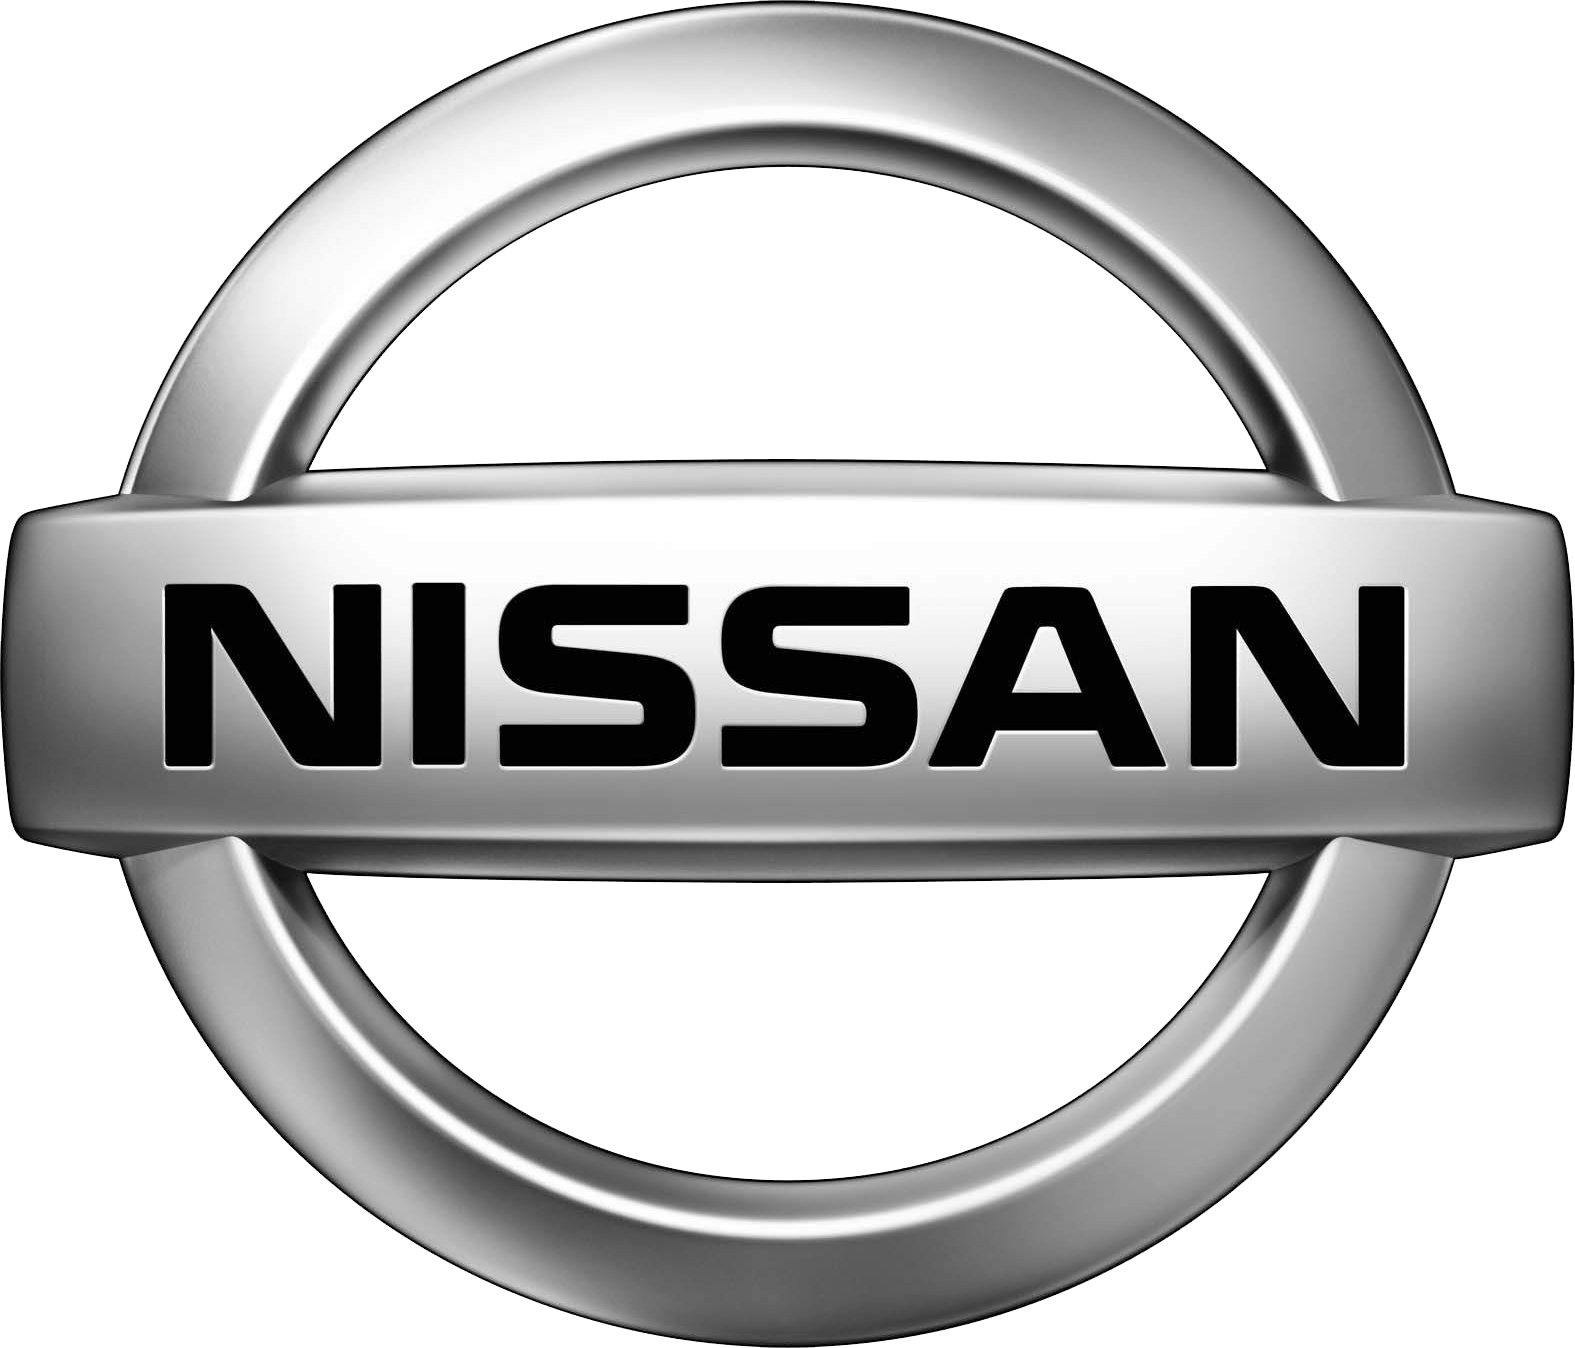 logo htm in ky parts of nissan dealer to dealership rewards adchoices florence new by com website one kerry